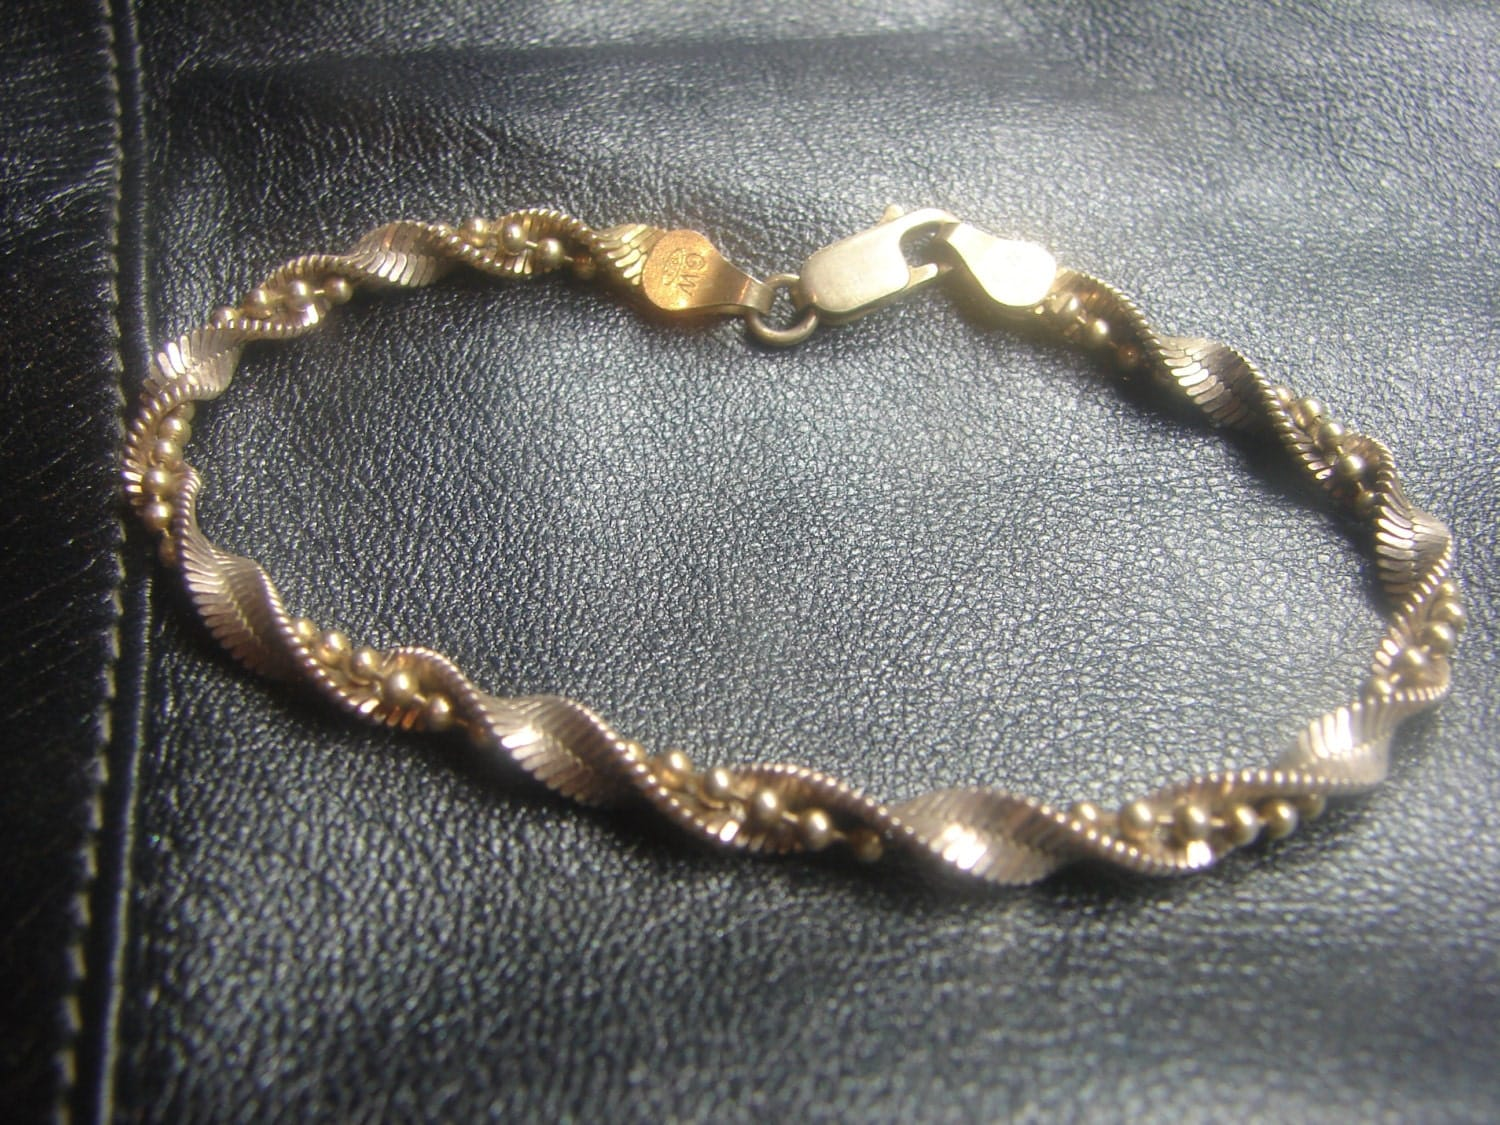 gw sterling silver twisted herringbone bracelet with bead